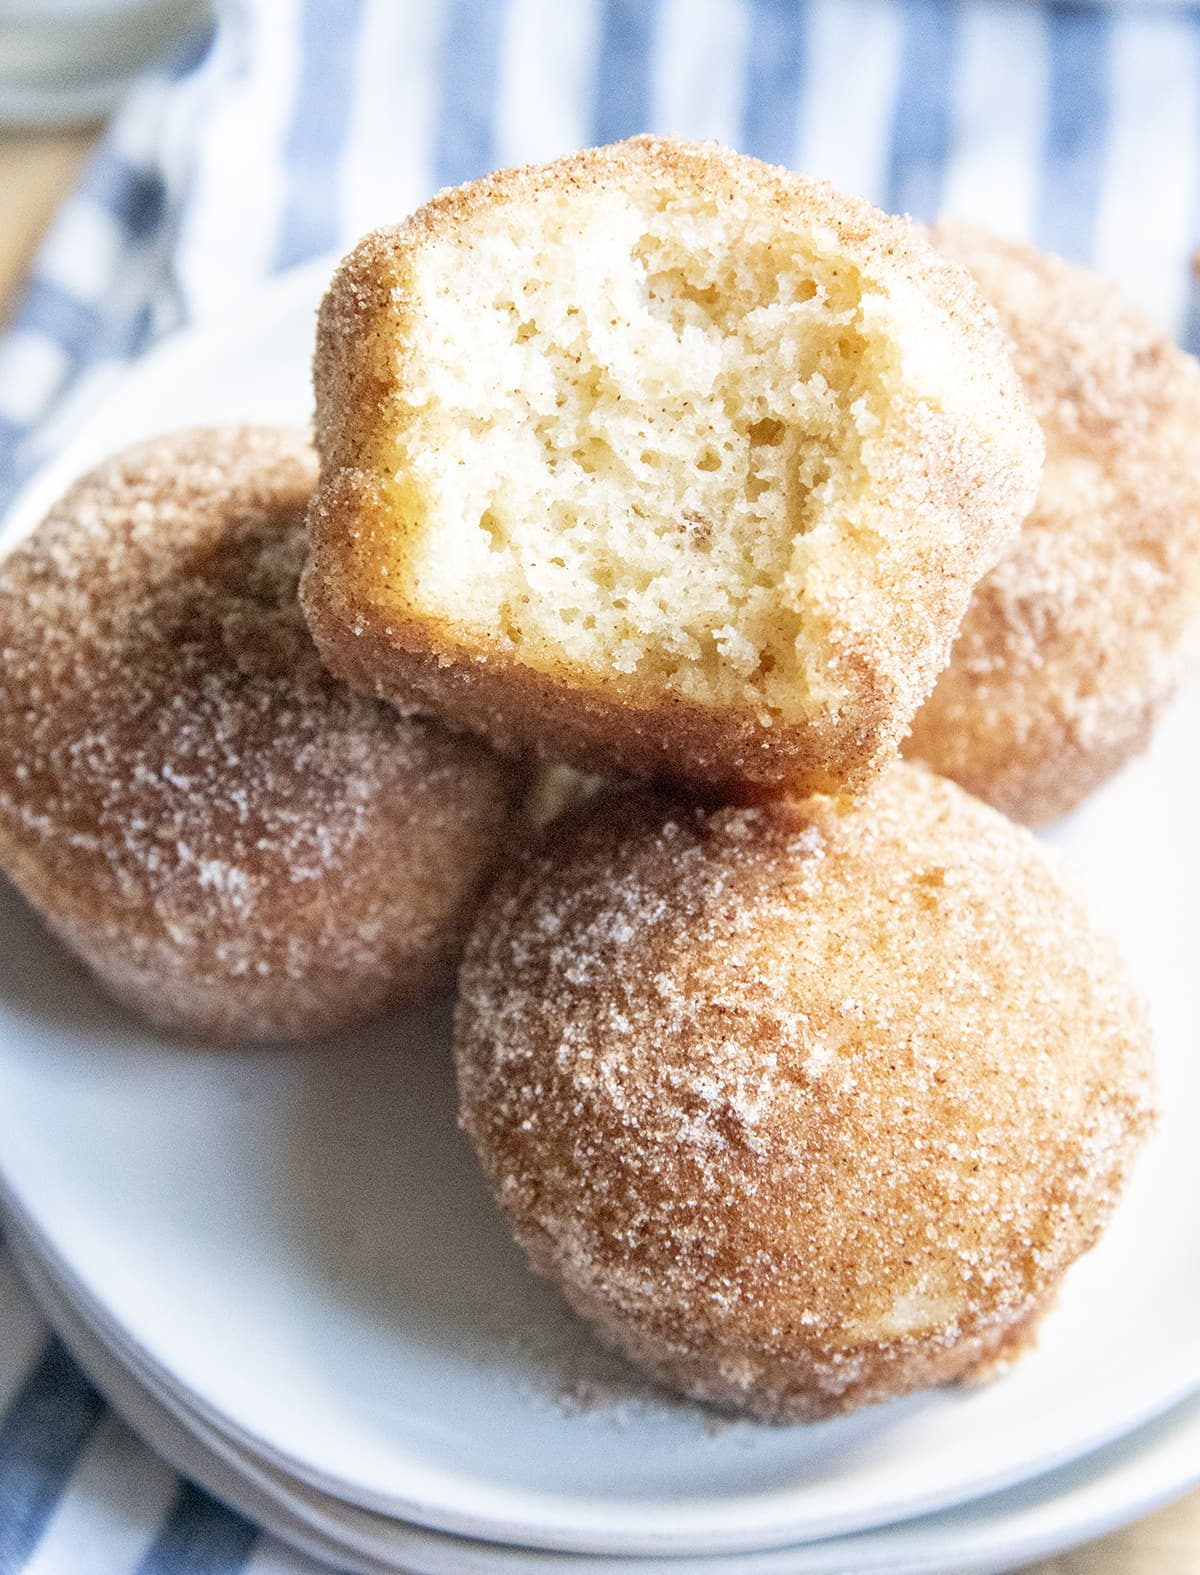 A pile of muffins coated in cinnamon sugar, the top muffin has a bite out of it showing the middle of the muffin.